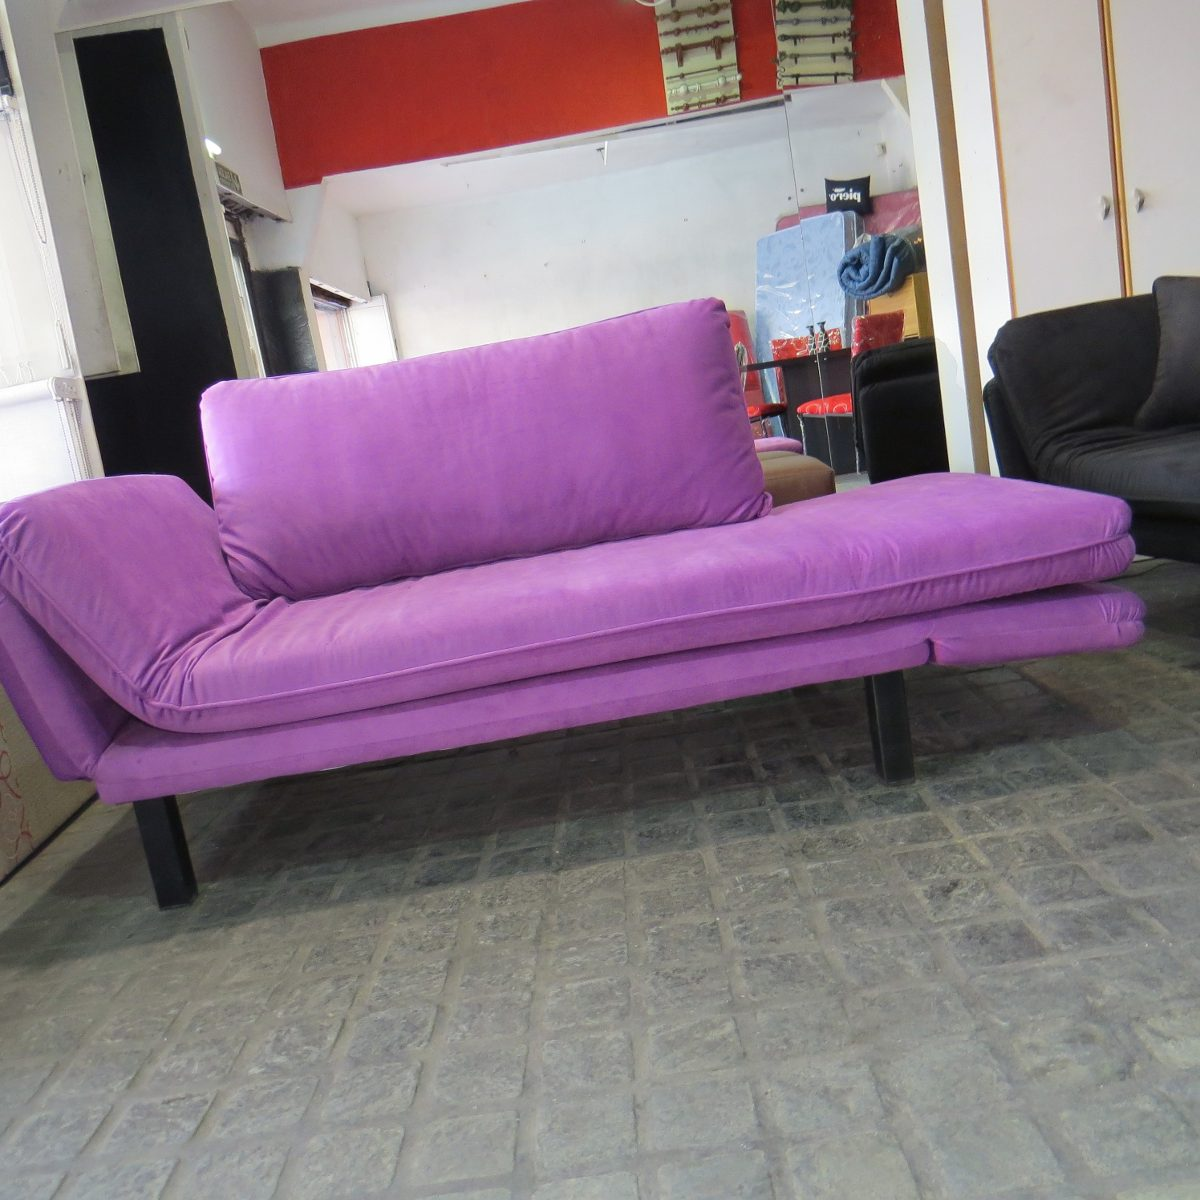 Sofa cama convertible perfect encontrar ms camas de hotel for Cama convertible ikea